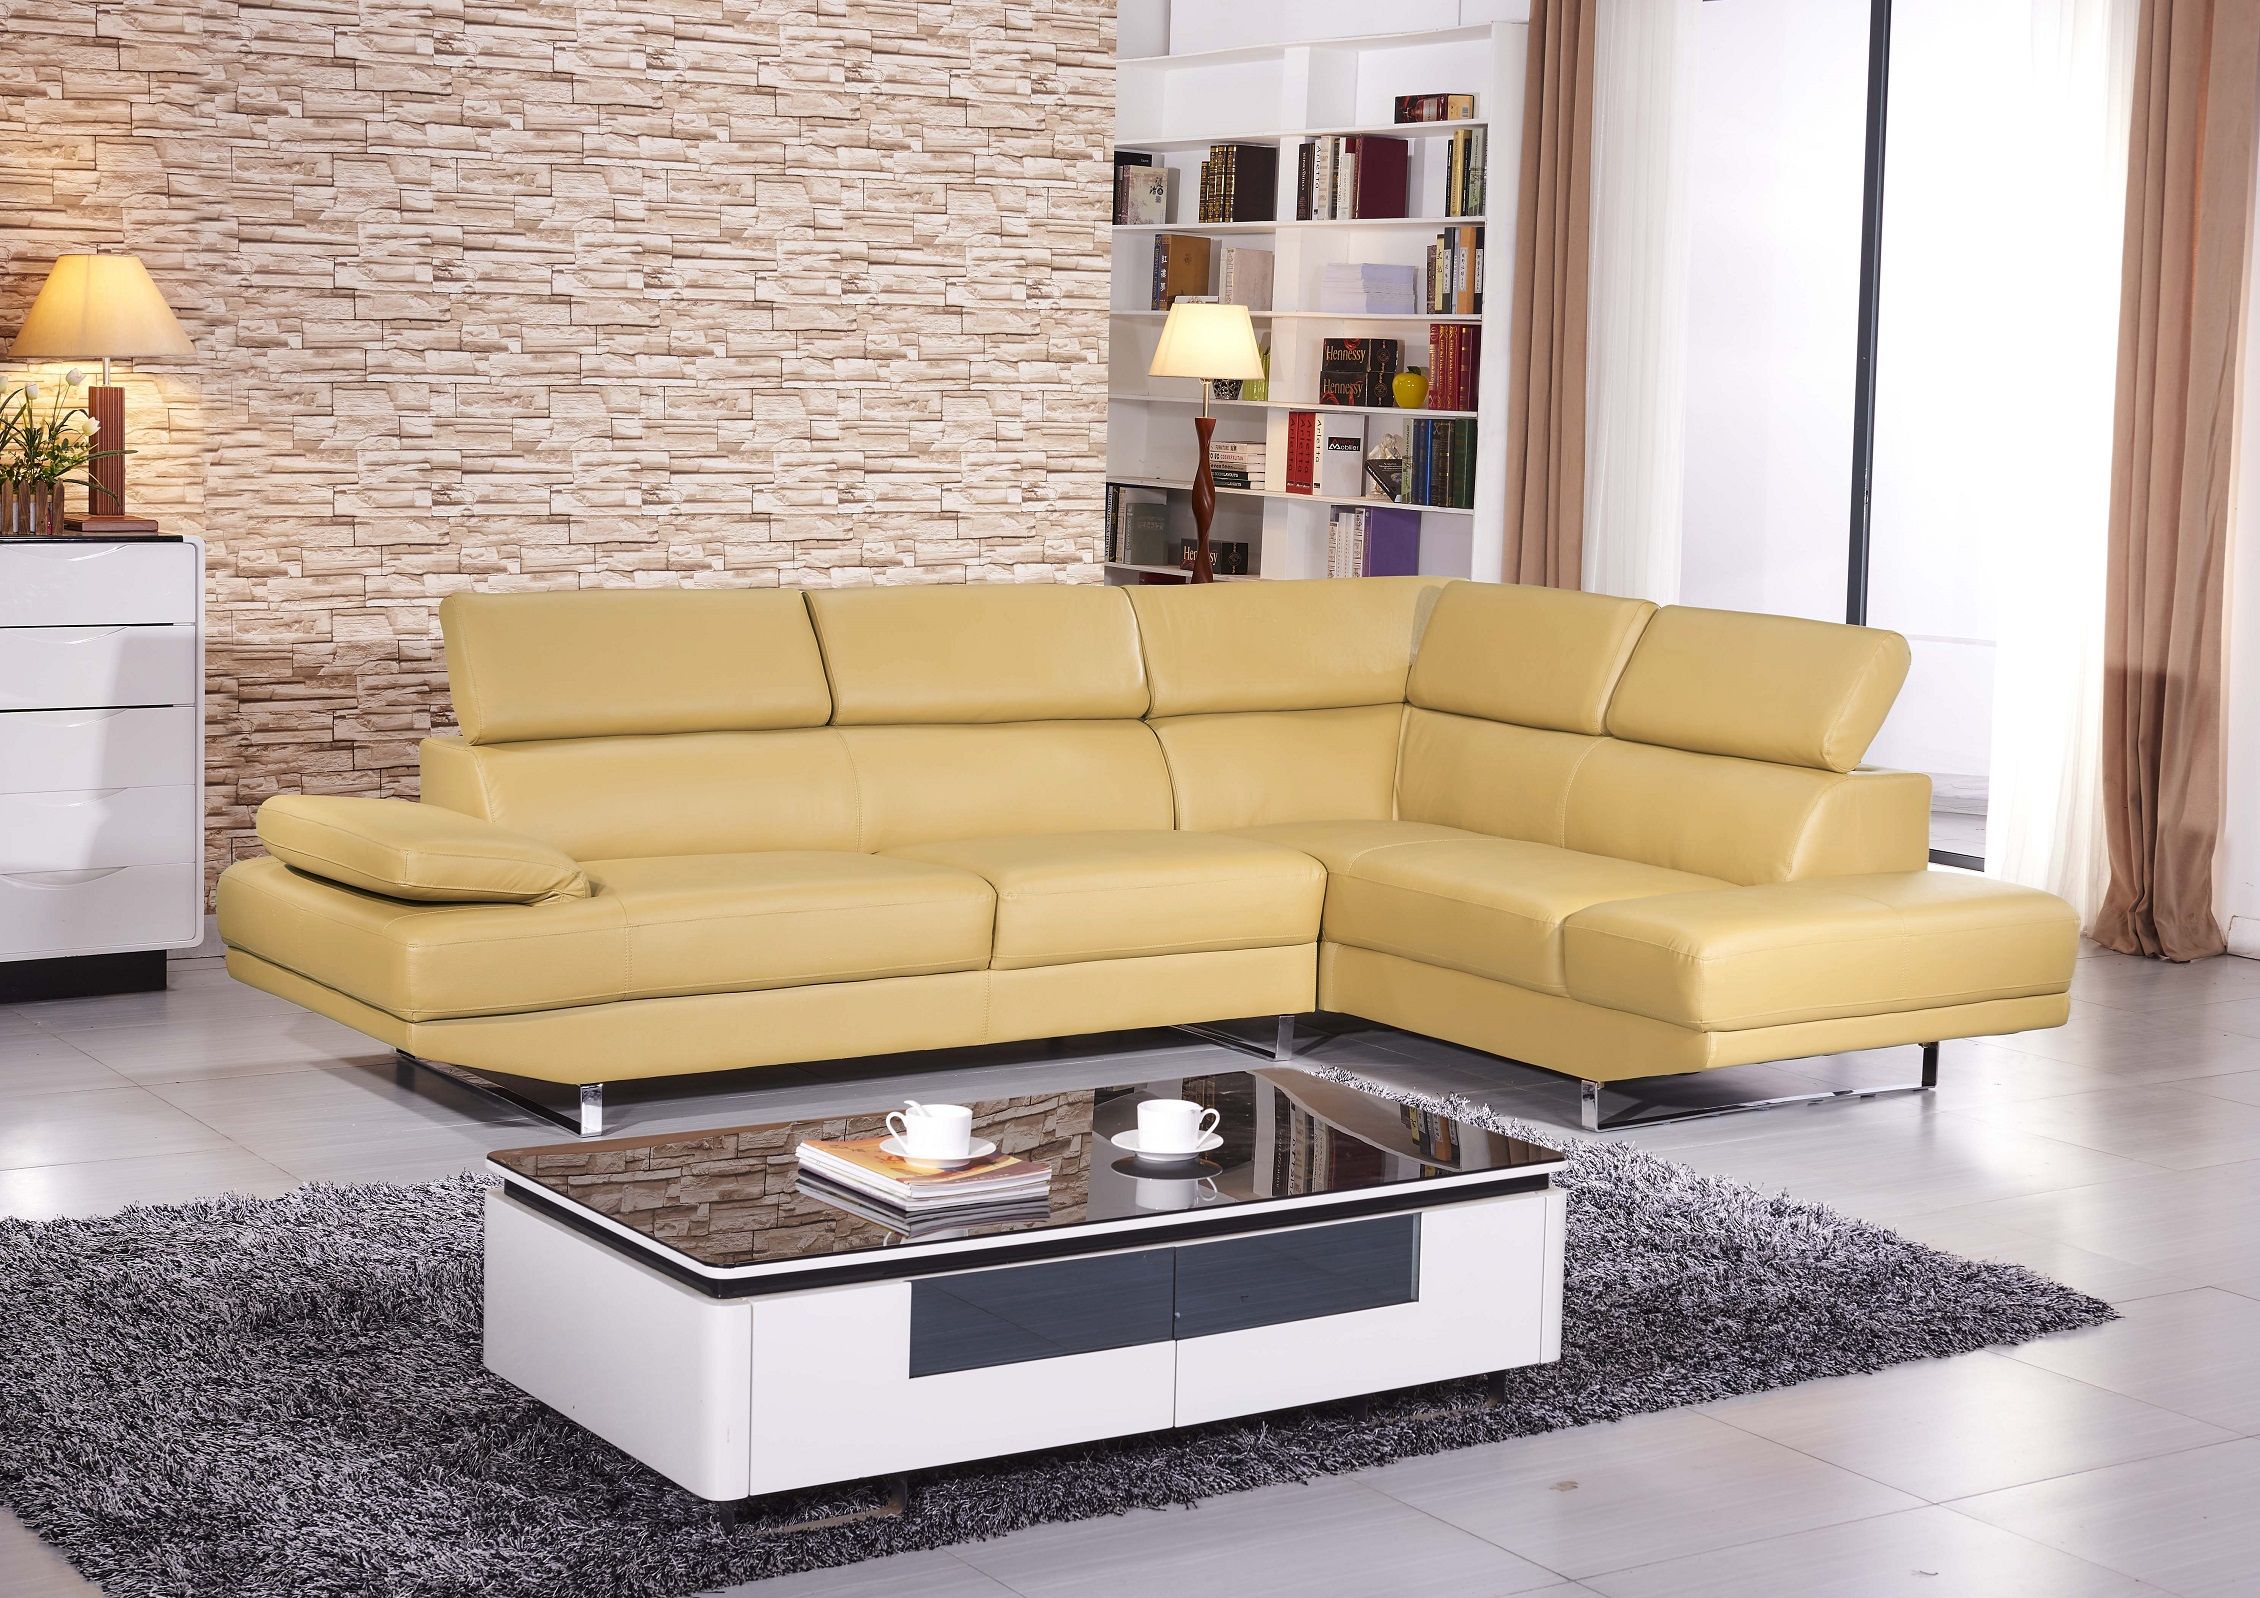 Mia Modern Sectional Soft Yellow Matisseco